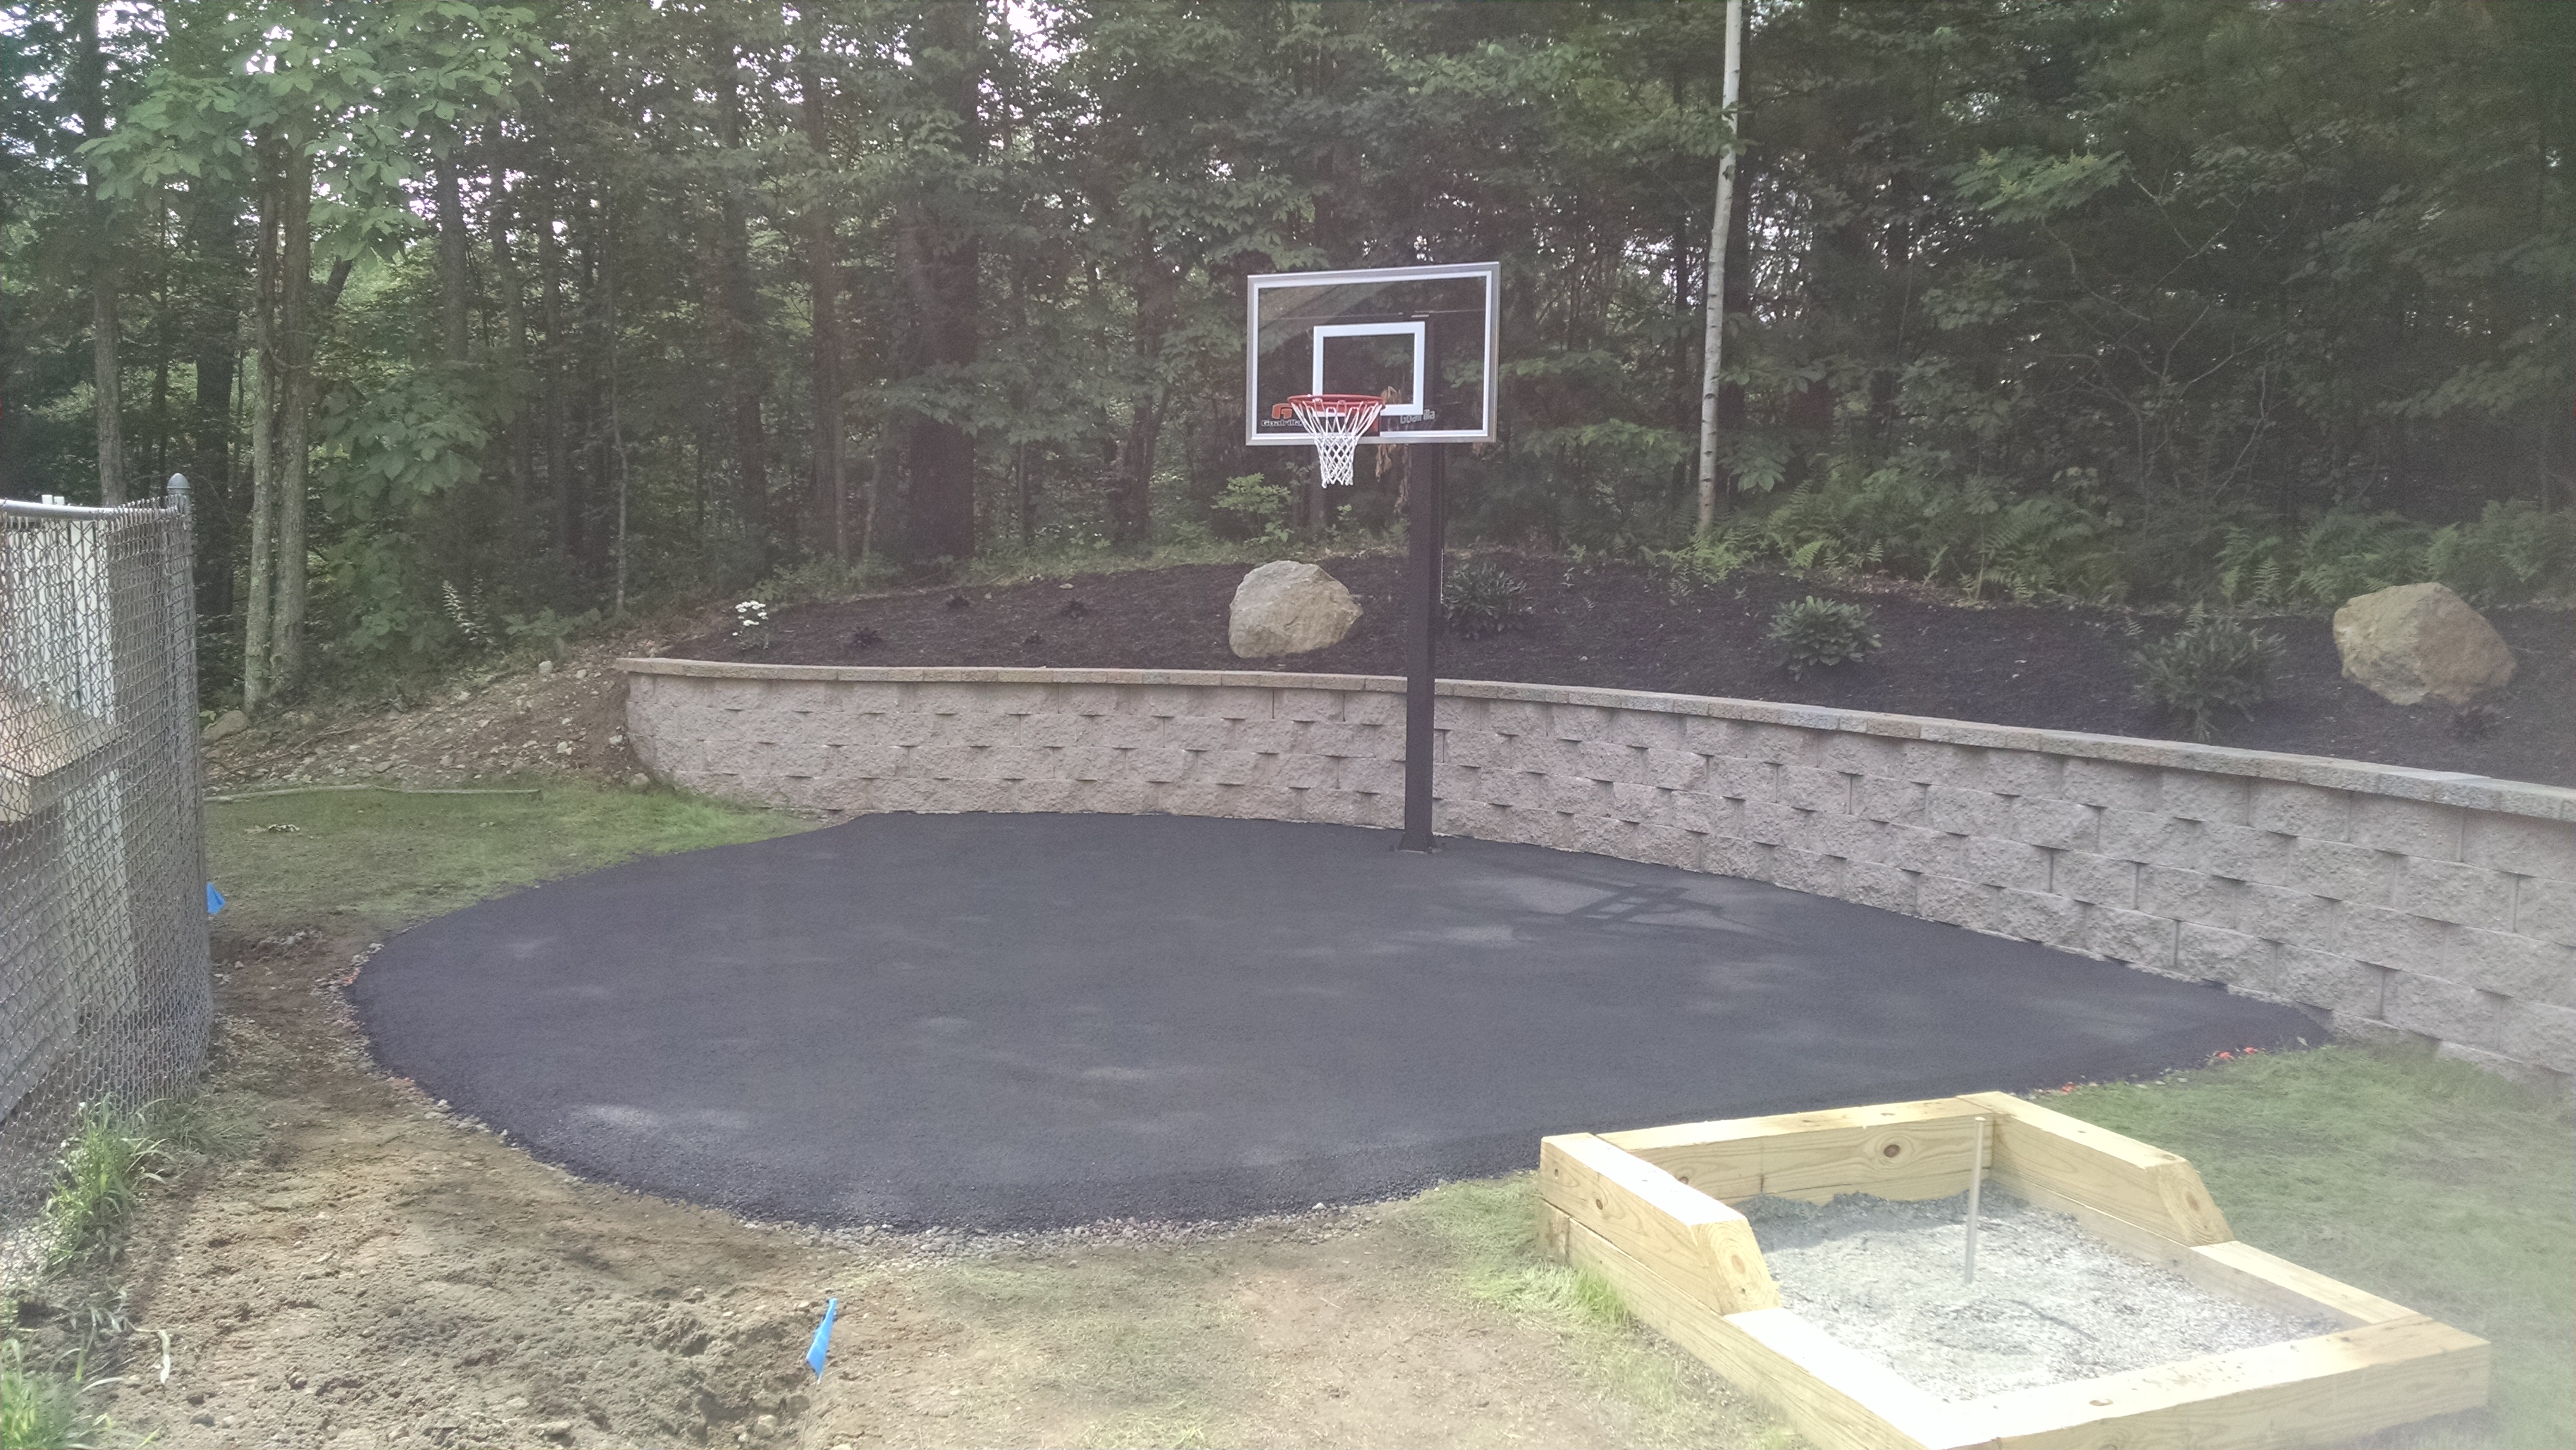 Basketball Court and Horseshoes